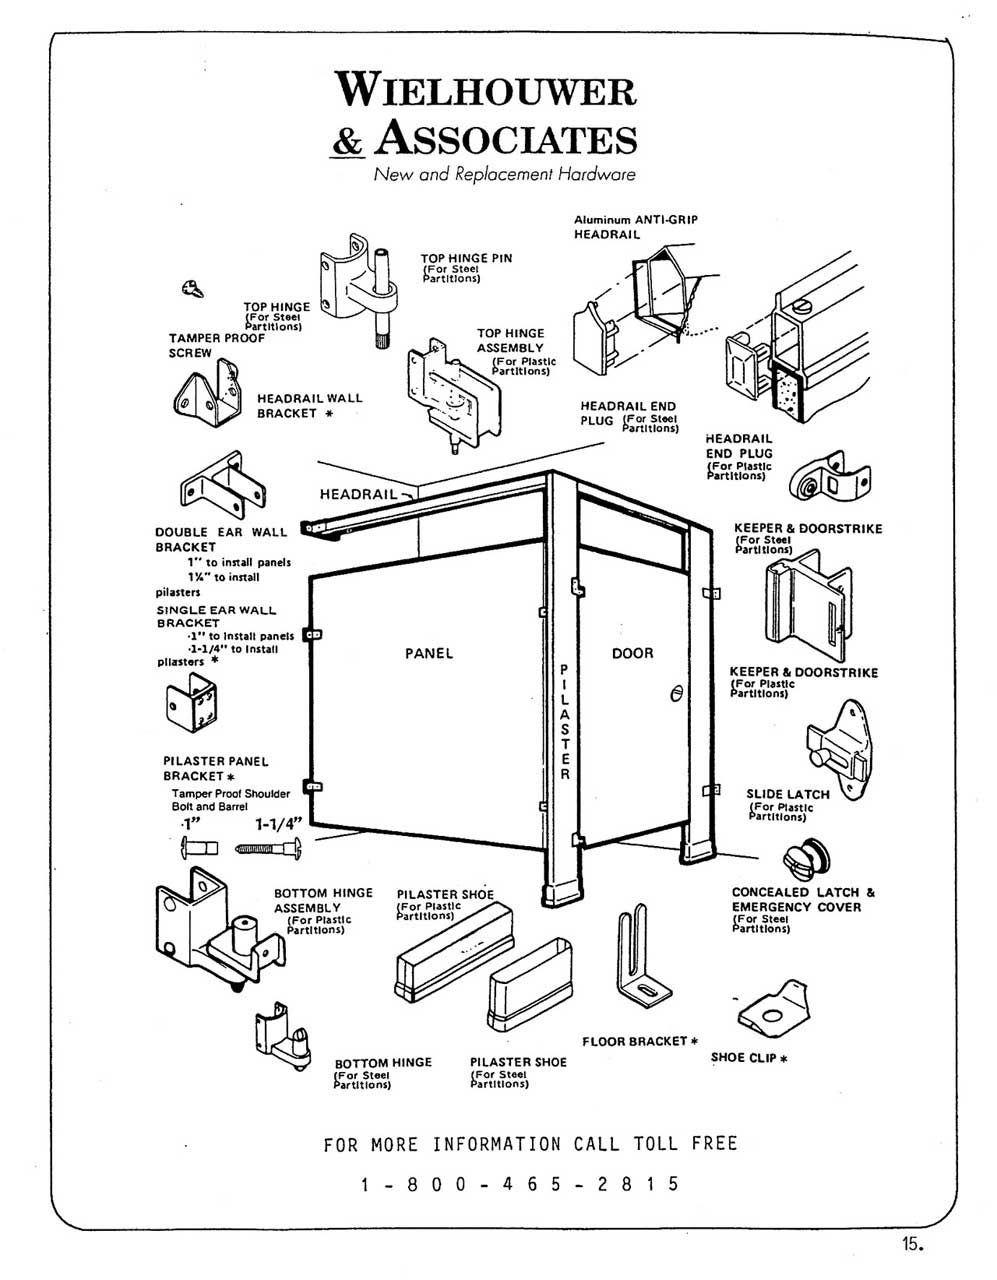 Amazing Bathroom Partitions Hardware Commercial Inspiration - Commercial bathroom stall latches